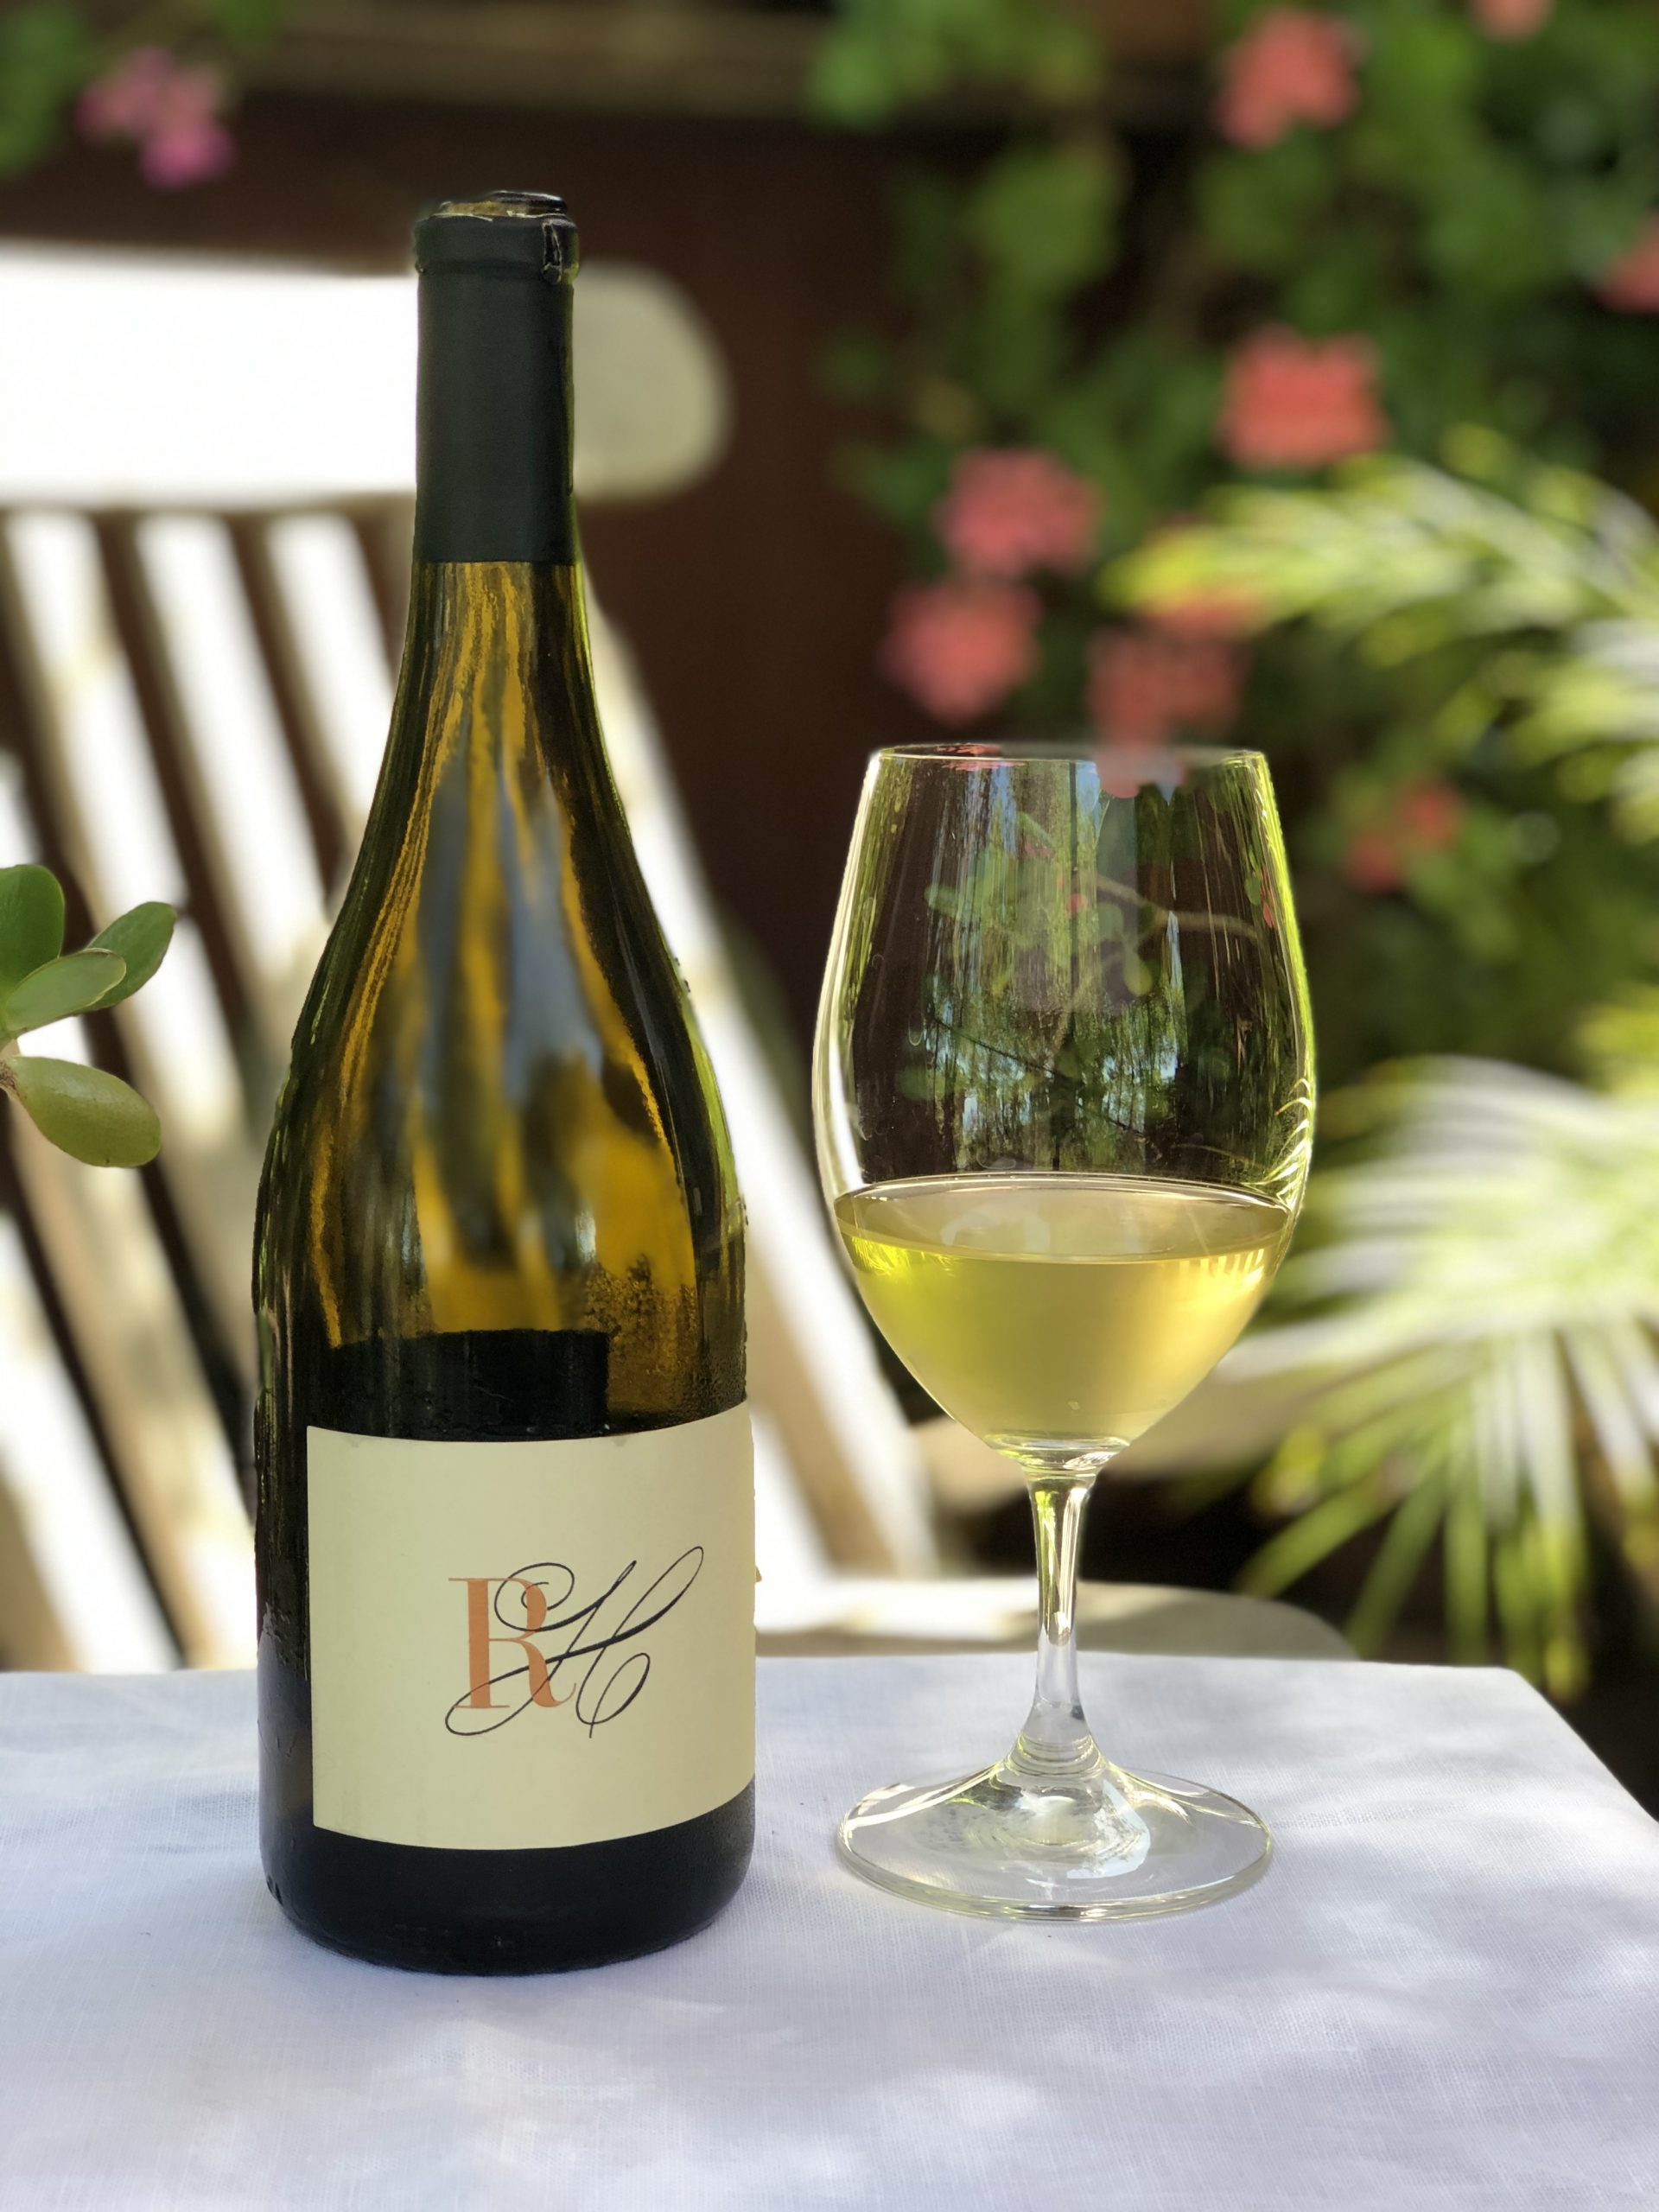 Read-Holland Chardonnay bottle & in glass on patio